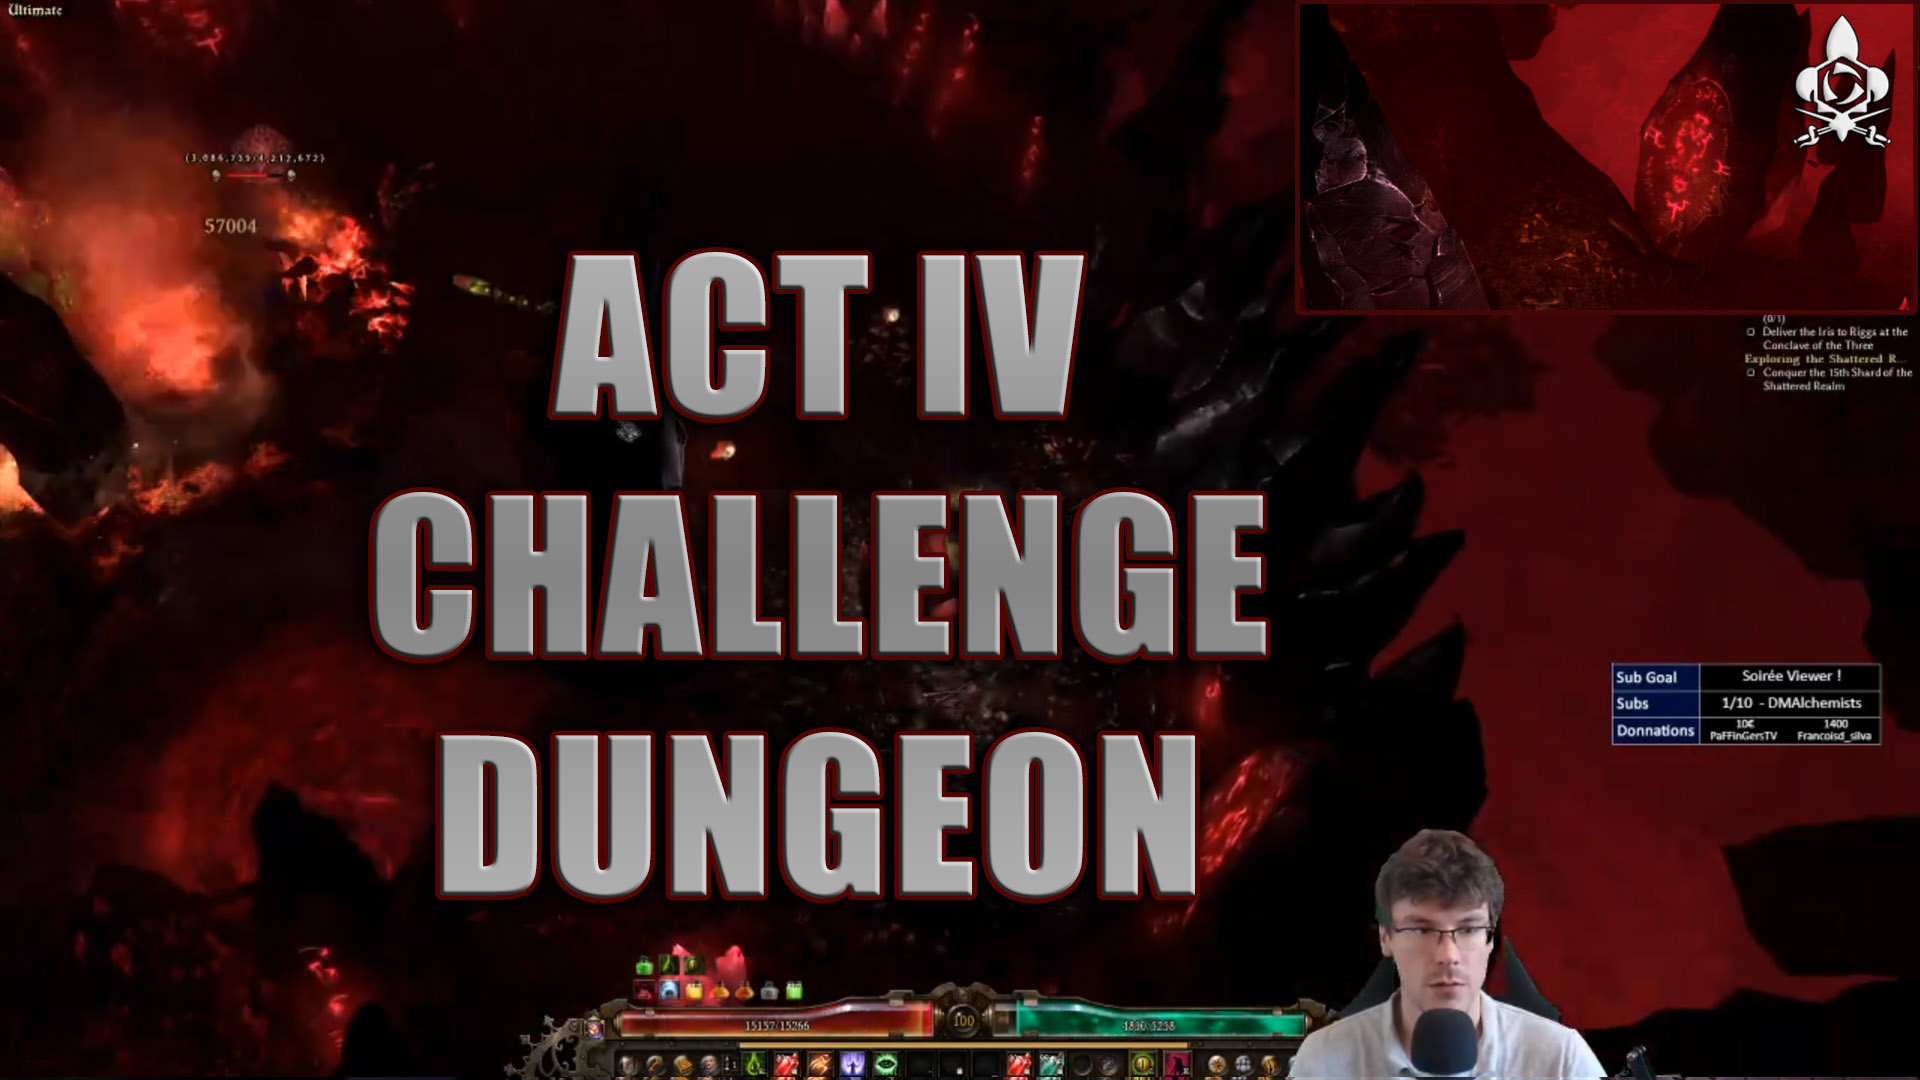 Act 4 dungeon challenge